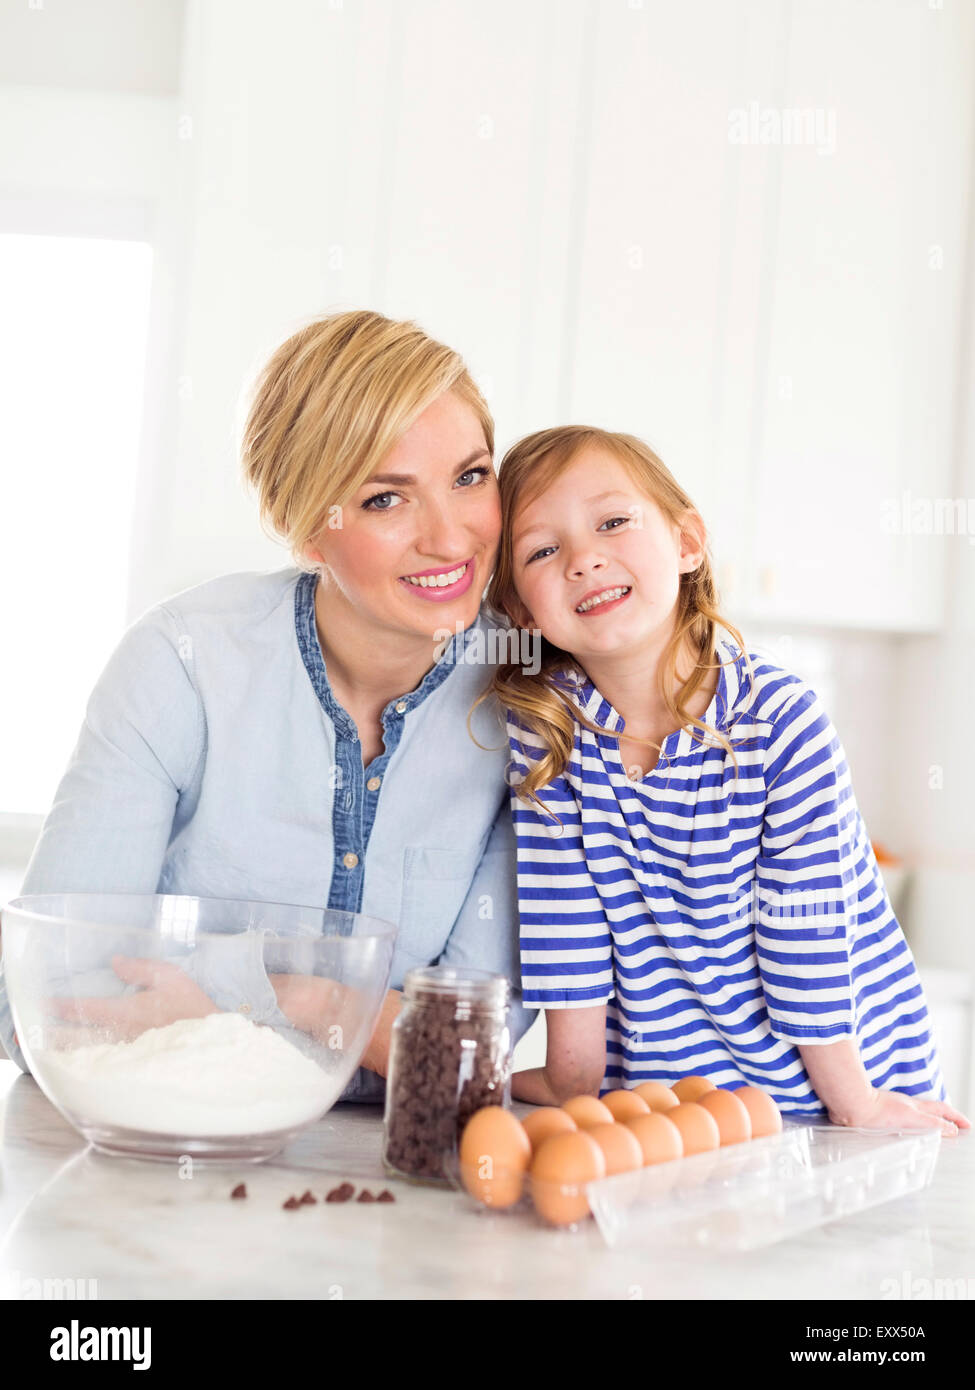 Portrait of girl (4-5) spending time with mom in kitchen Stock Photo